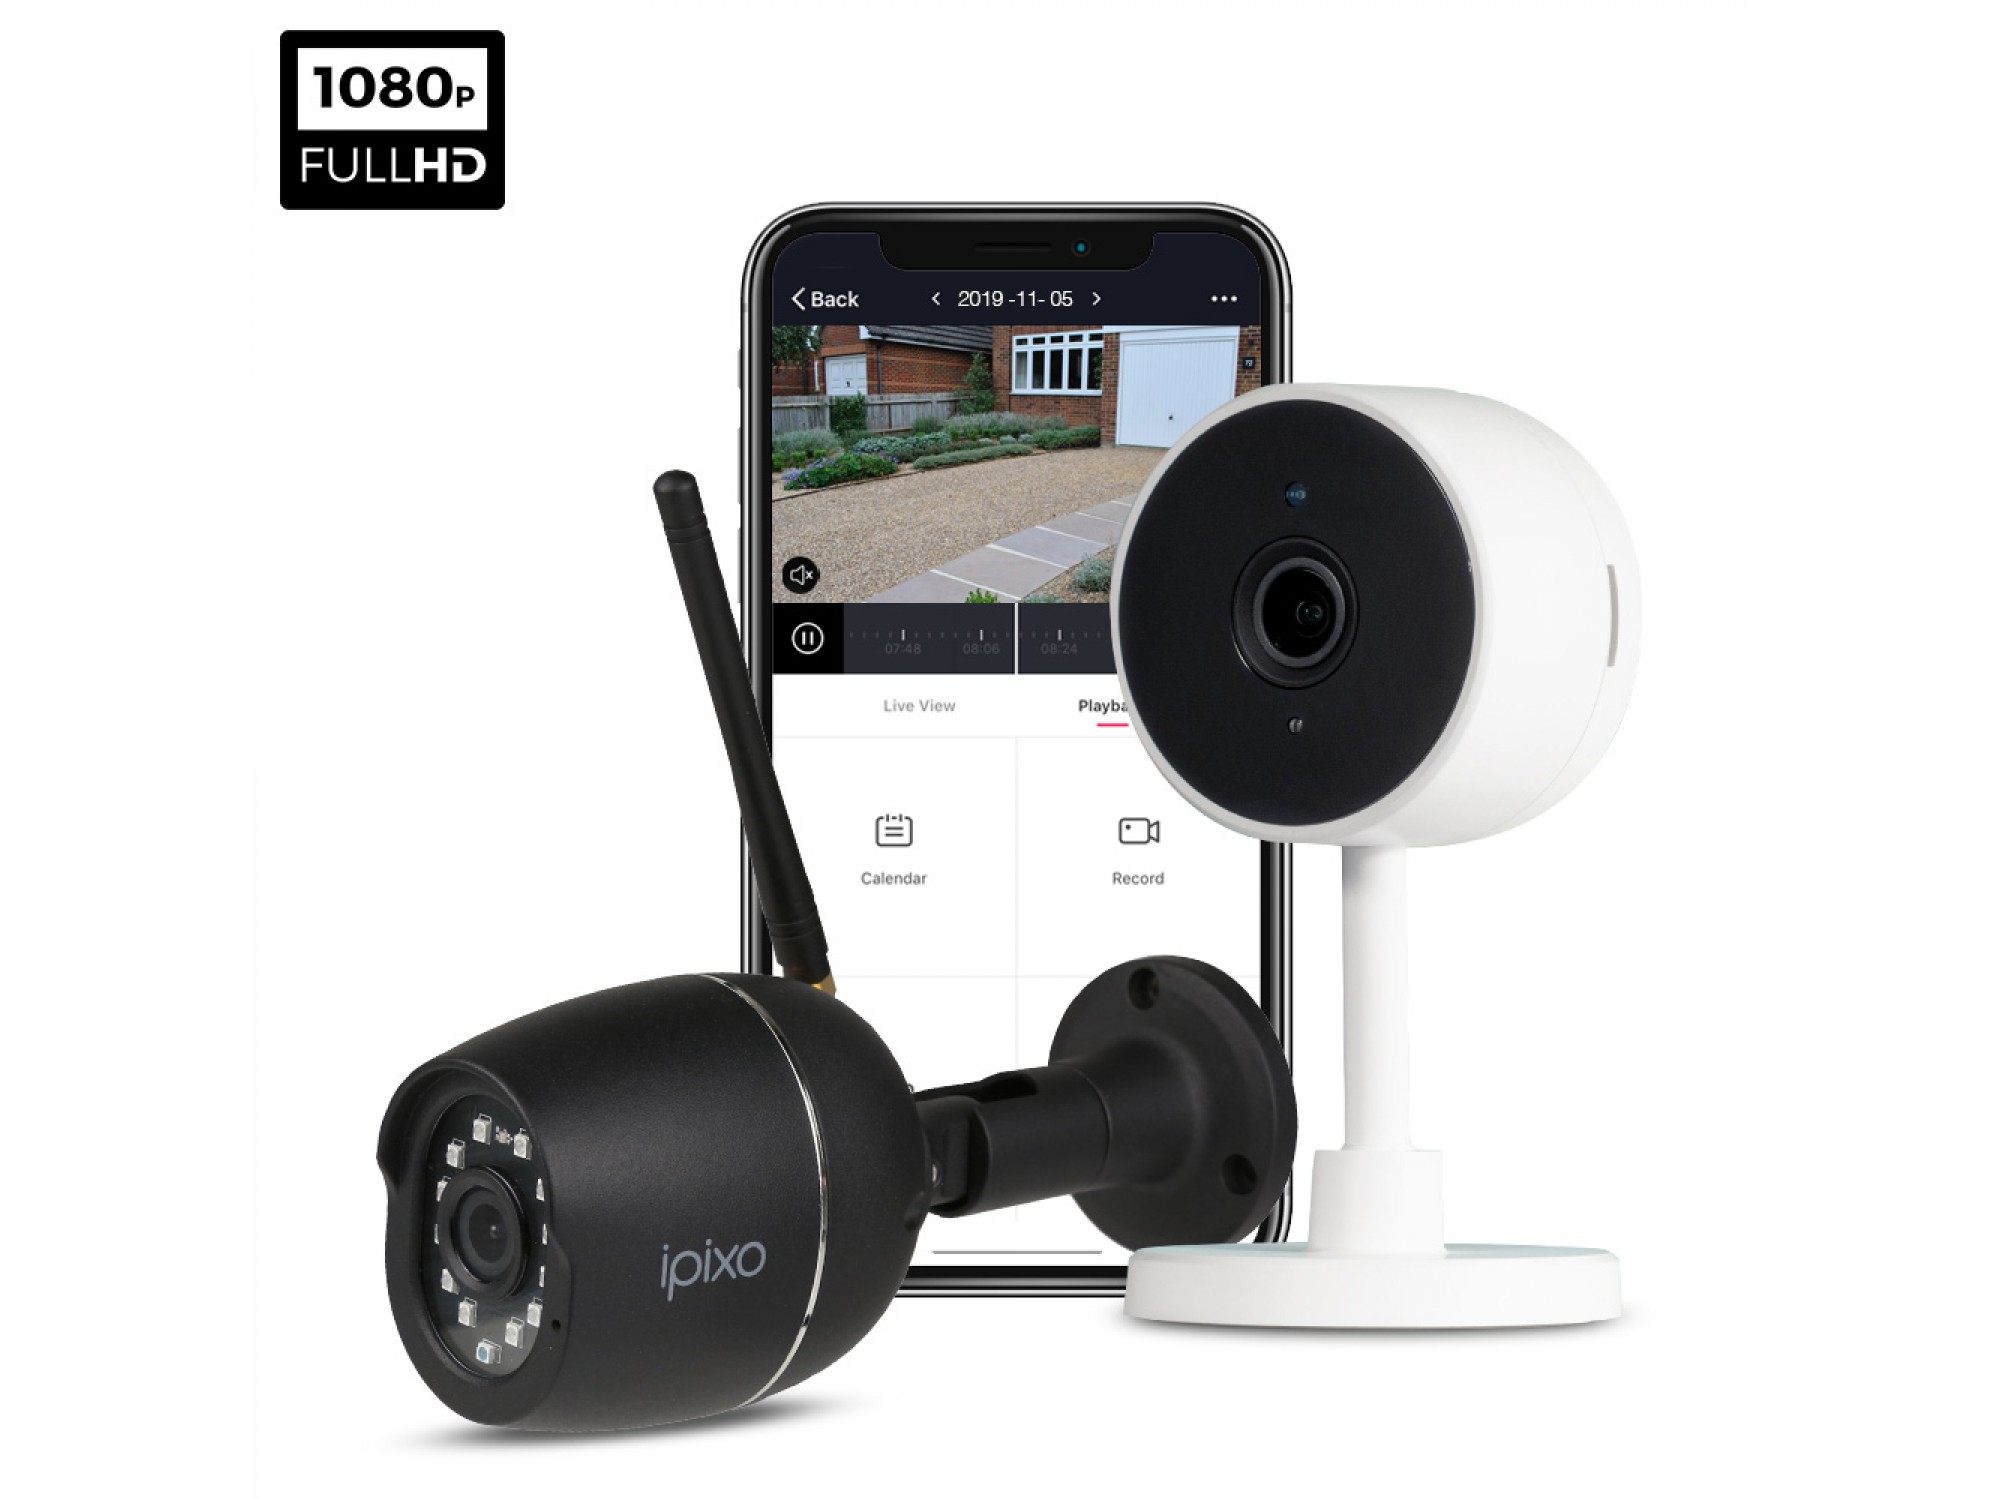 ipixo 1080p WiFi Home Security Camera System. 1 Indoor + 1 Outdoor WiFi Security Camera